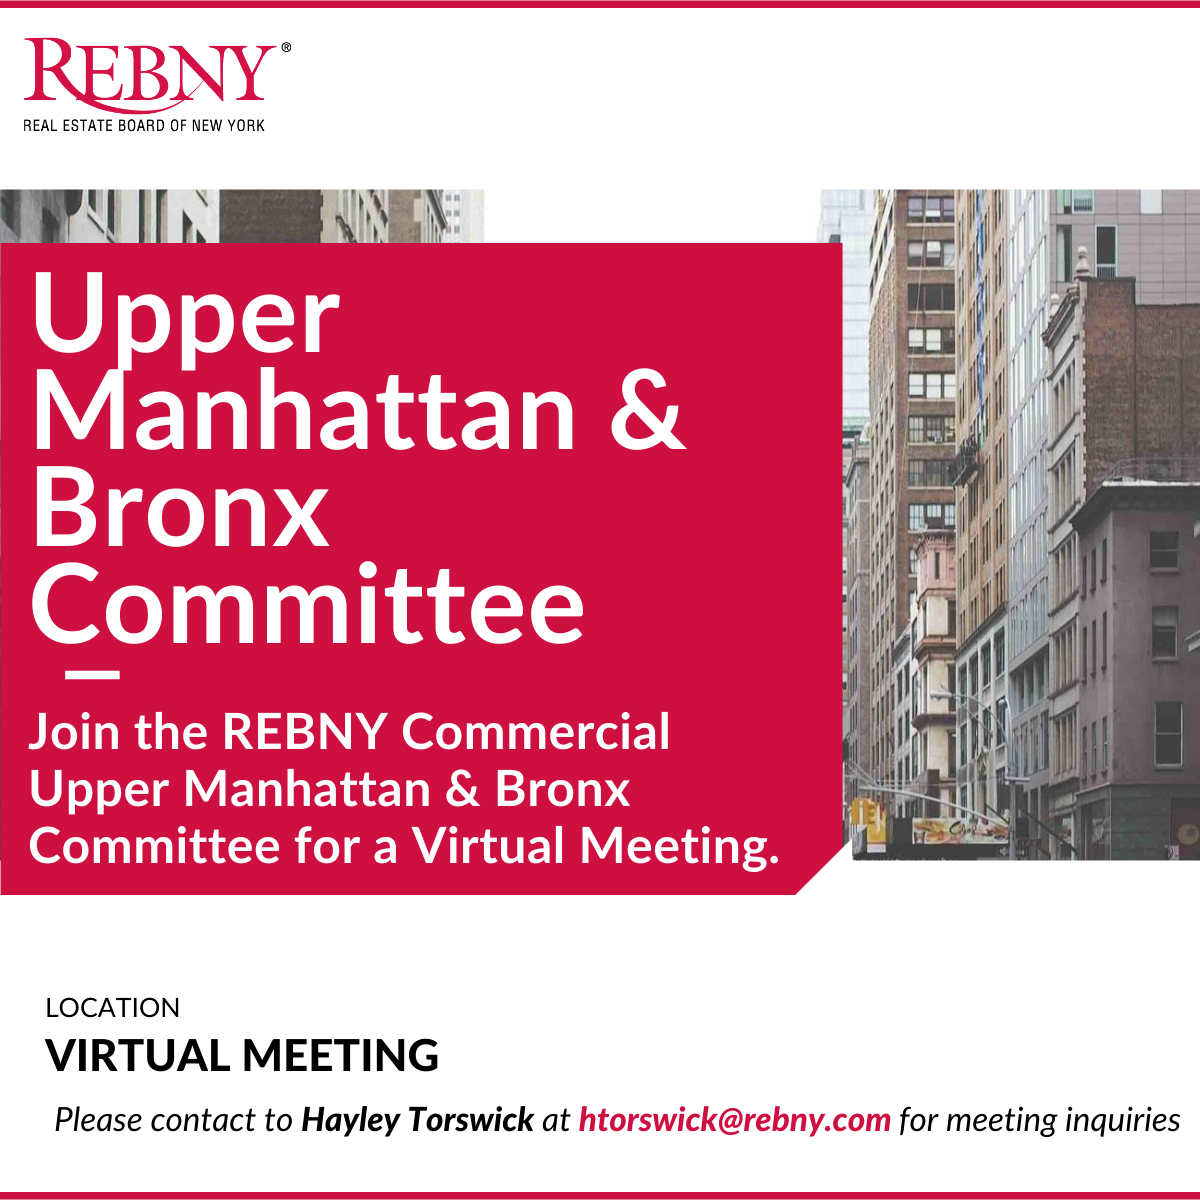 VIRTUAL: Commercial Brokerage Upper Manhattan & Bronx Committee Meeting